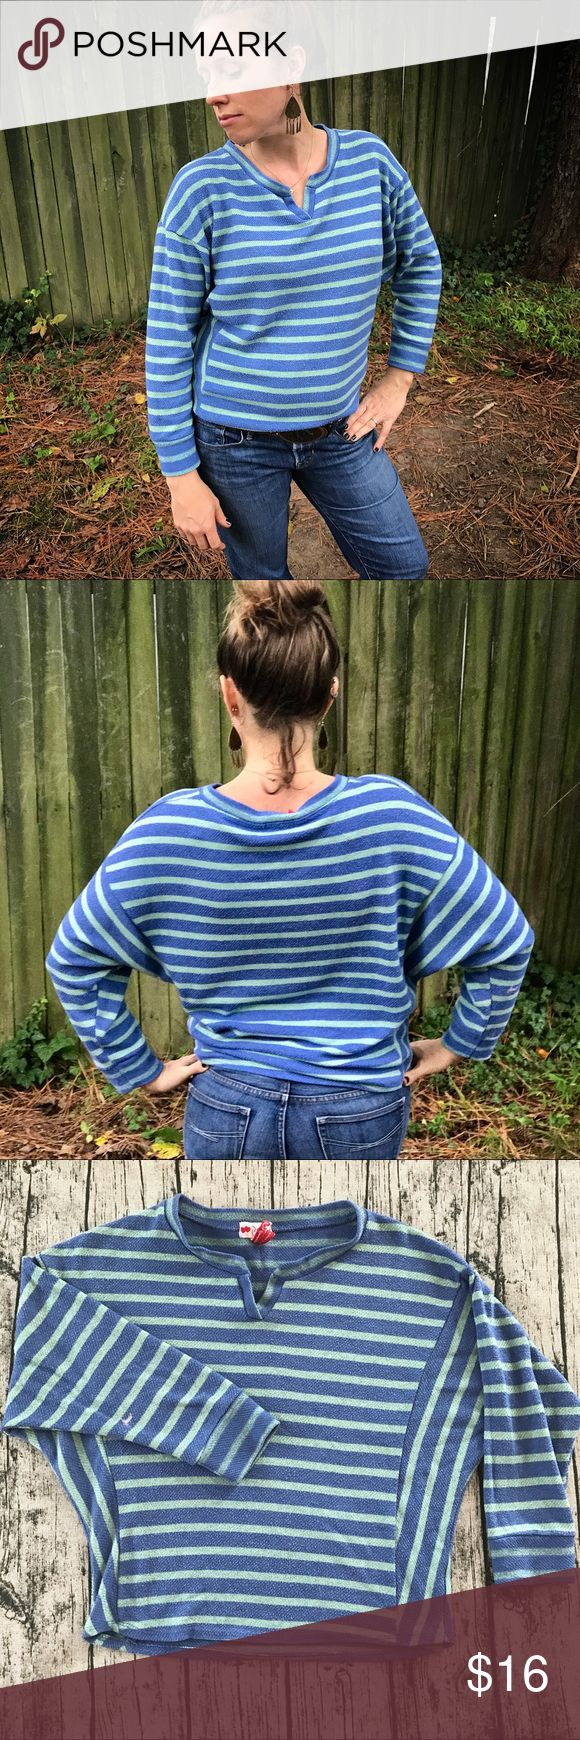 [Poof!] Blue Striped Top [Poof!] Blue Striped Top  Small bleach stain on back and front of one arm (pictured - price reflects damage.) Size Large. The first picture reflects the truest color.  •Long Sleeved Top, Sweater, Striped• Poof! Tops